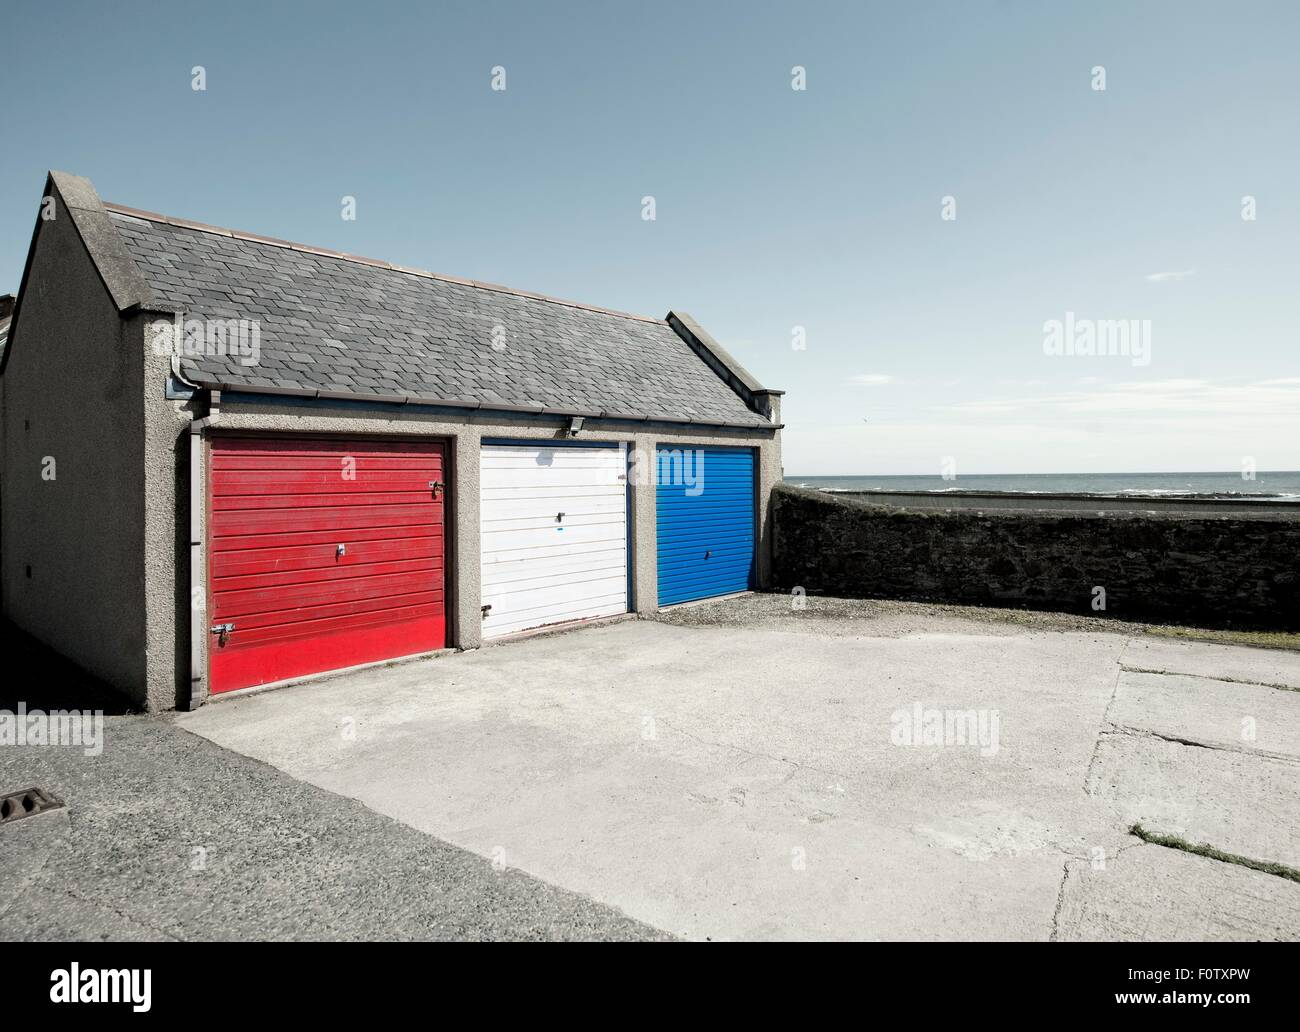 Garage Doors Painted Red White And Blue Johnshaven Aberdeenshire